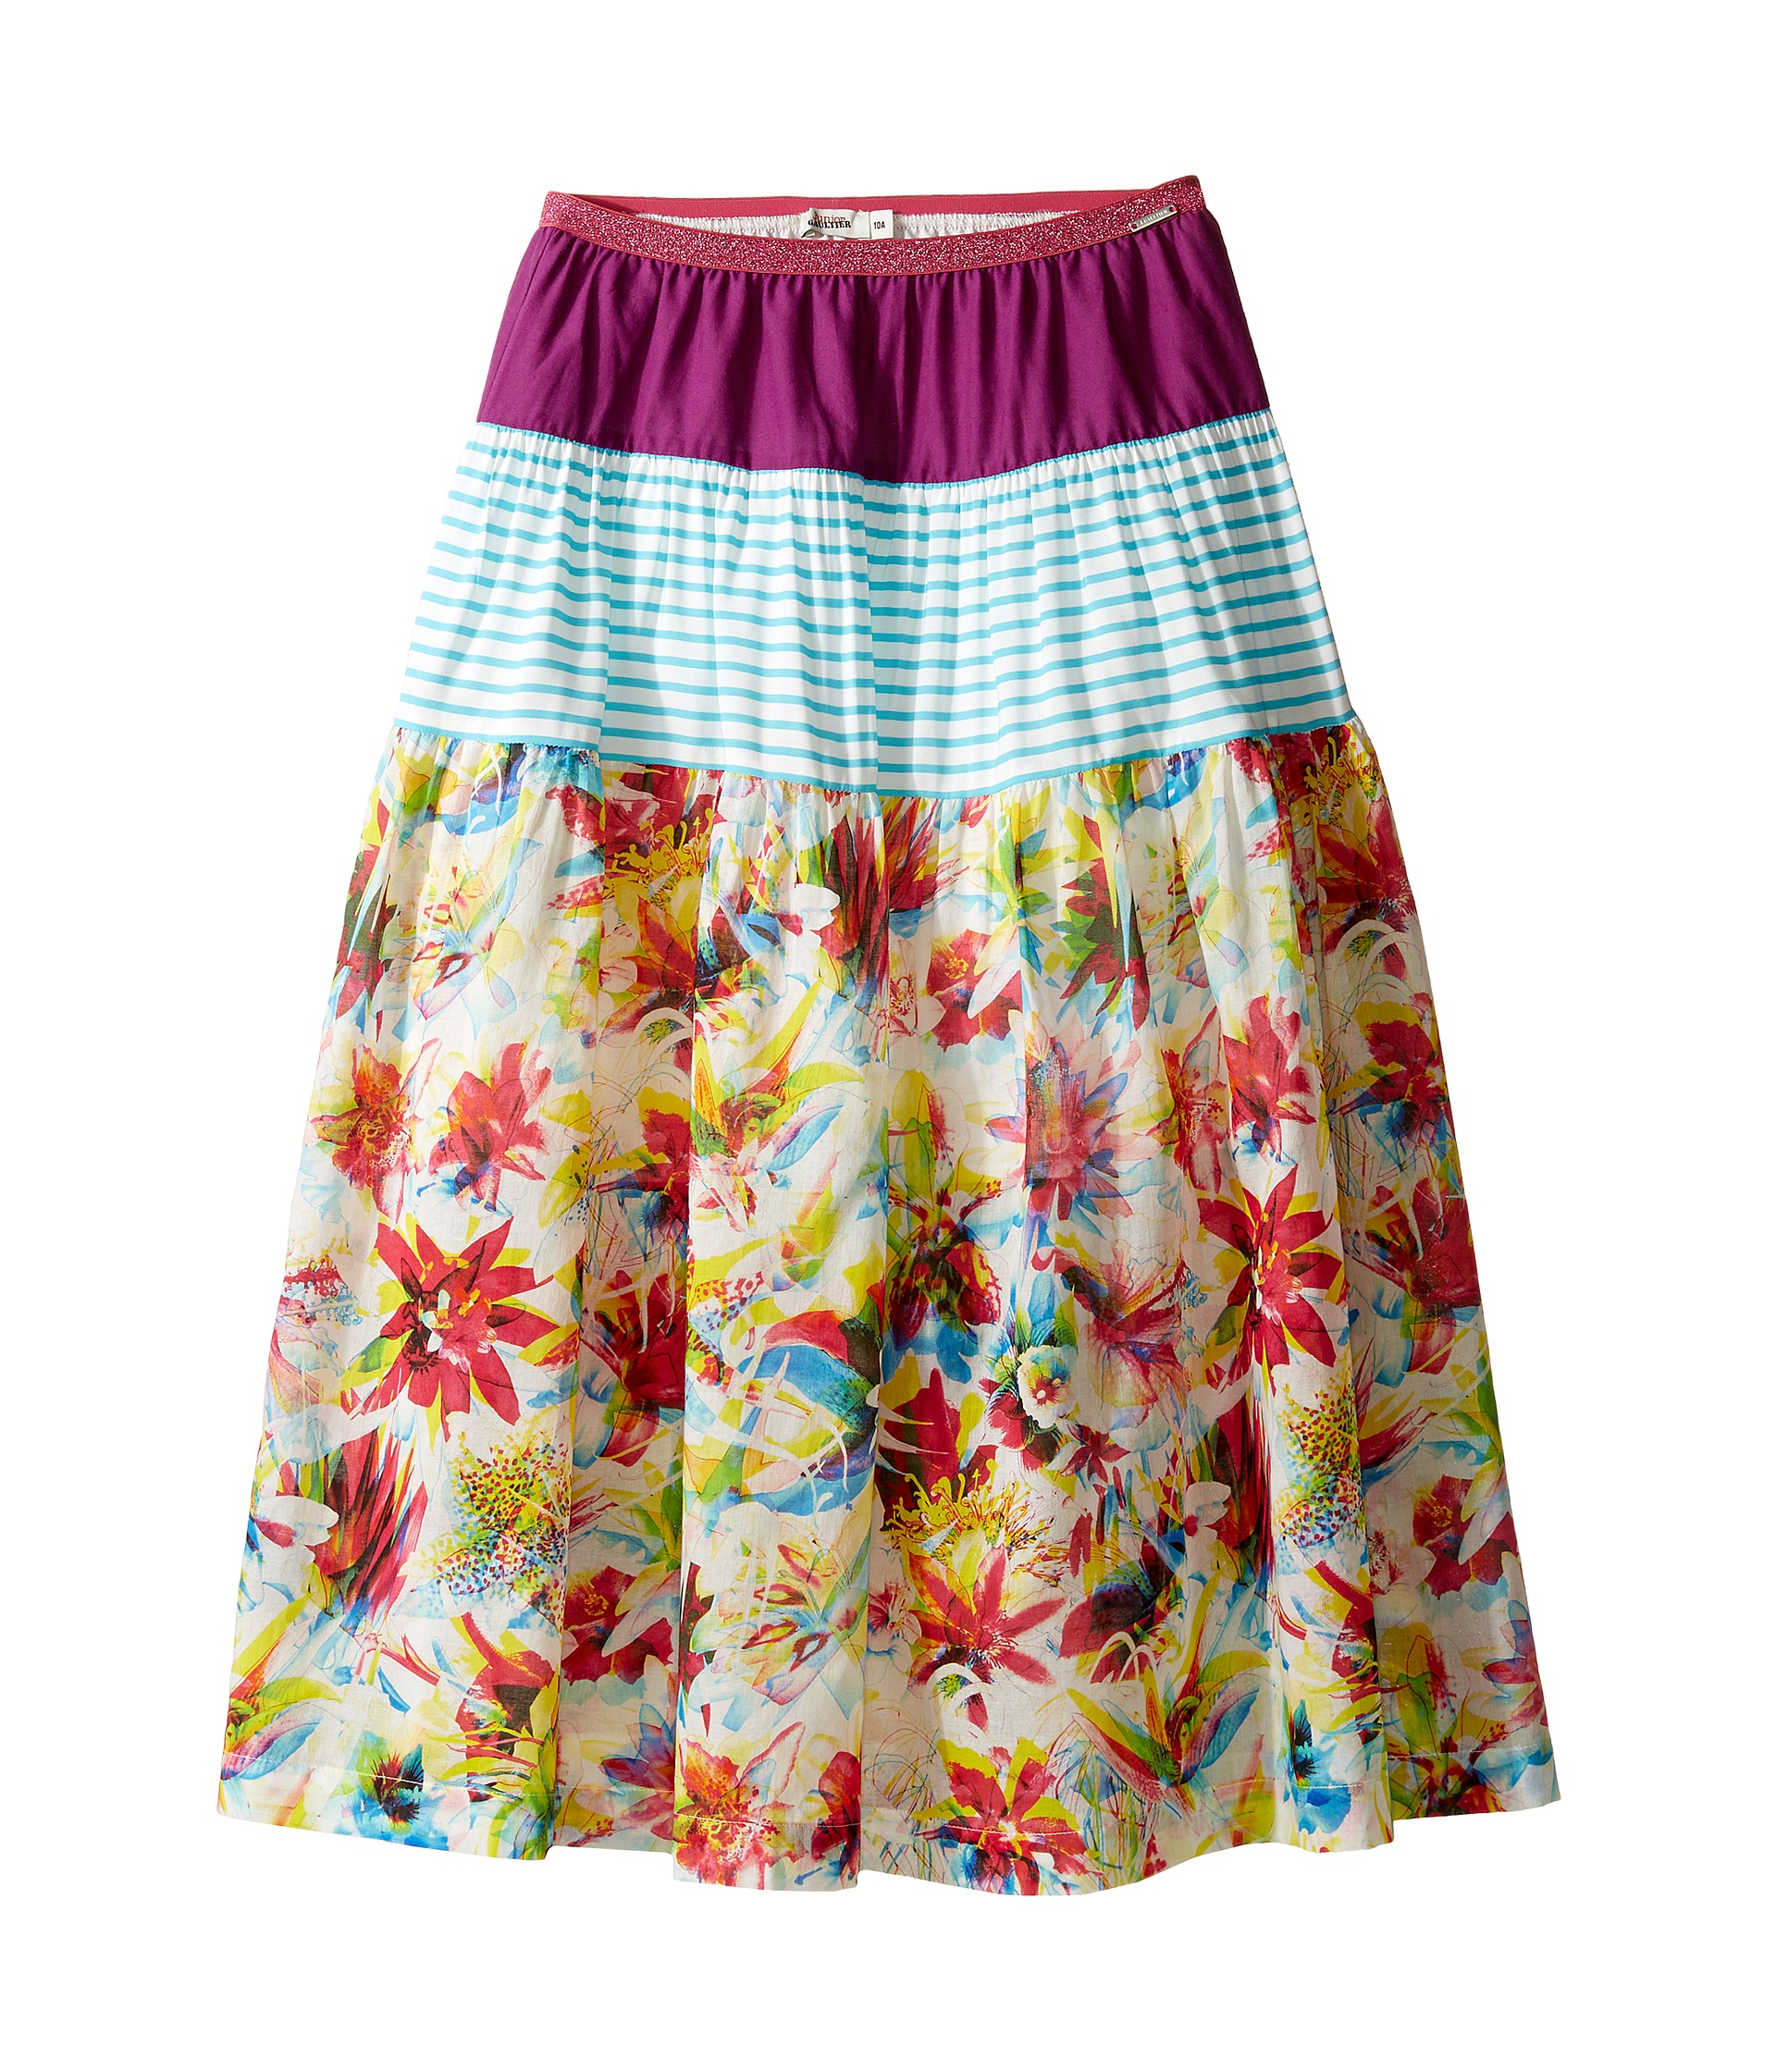 Junior Gaultier Purple Blue and White Stripes Floral Print 3 Tiered Skirt (Big Kids) at Zappos.com